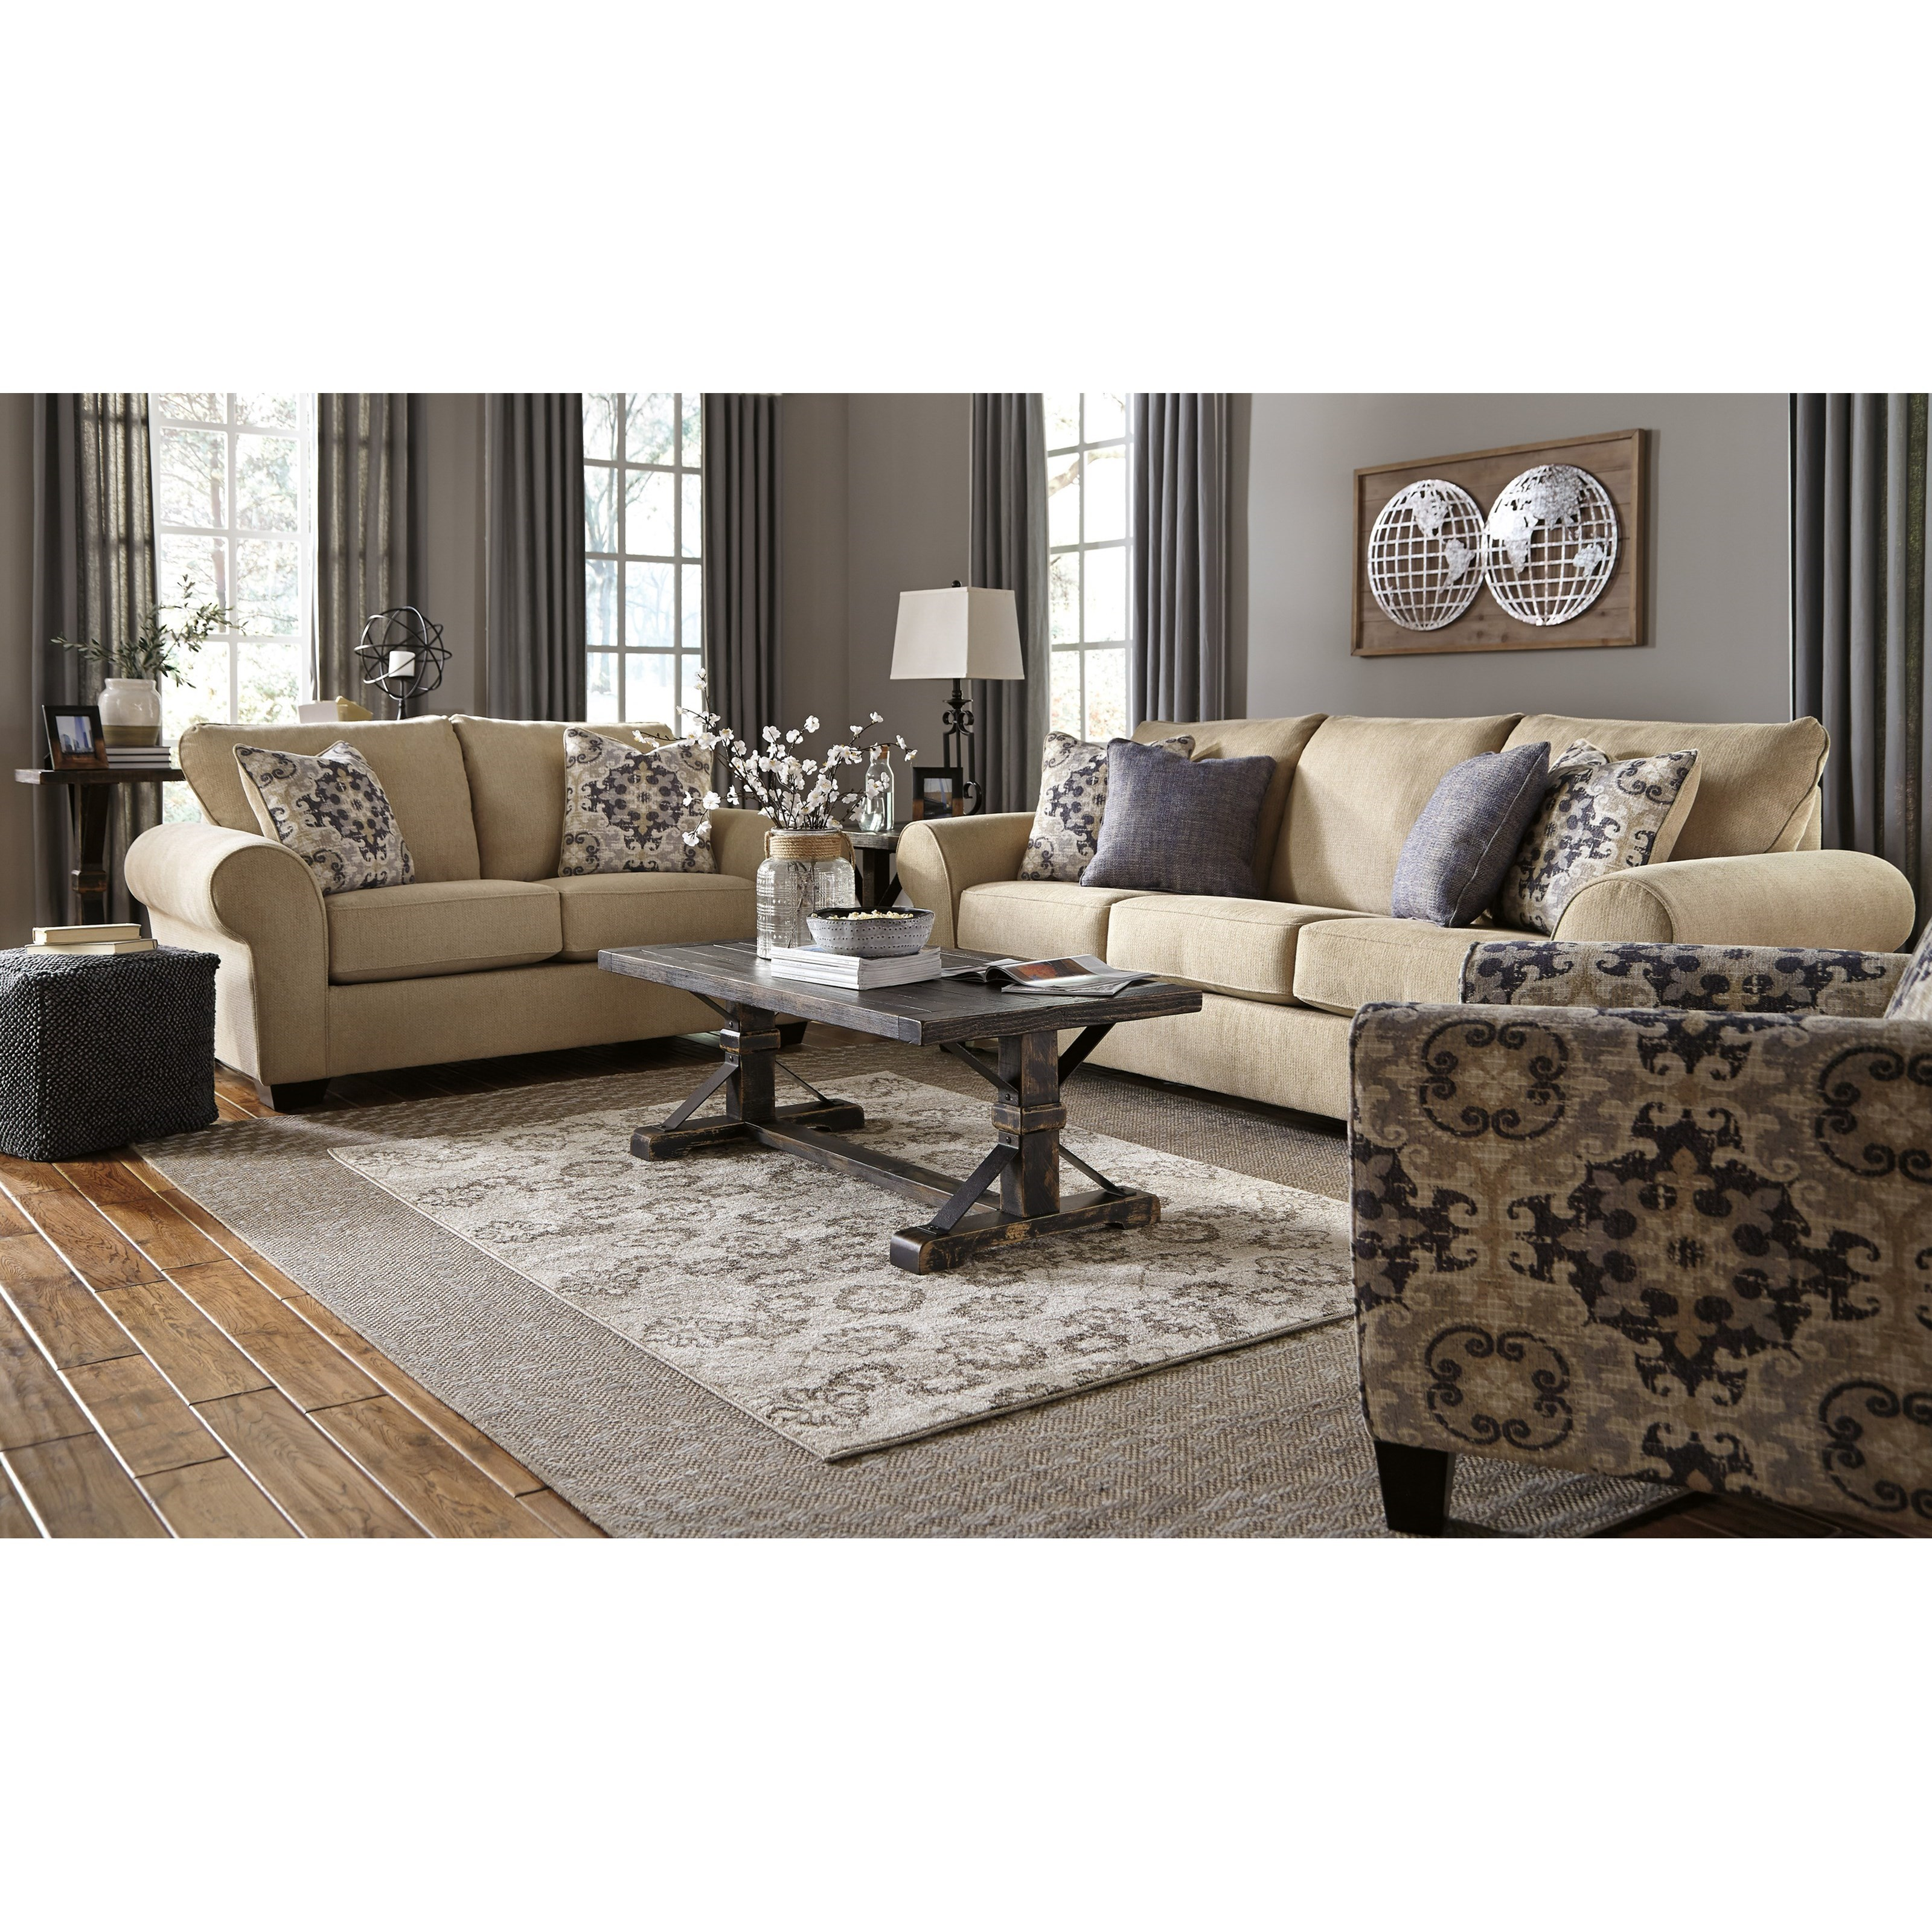 Signature Design By Ashley Denitasse Casual Sofa With